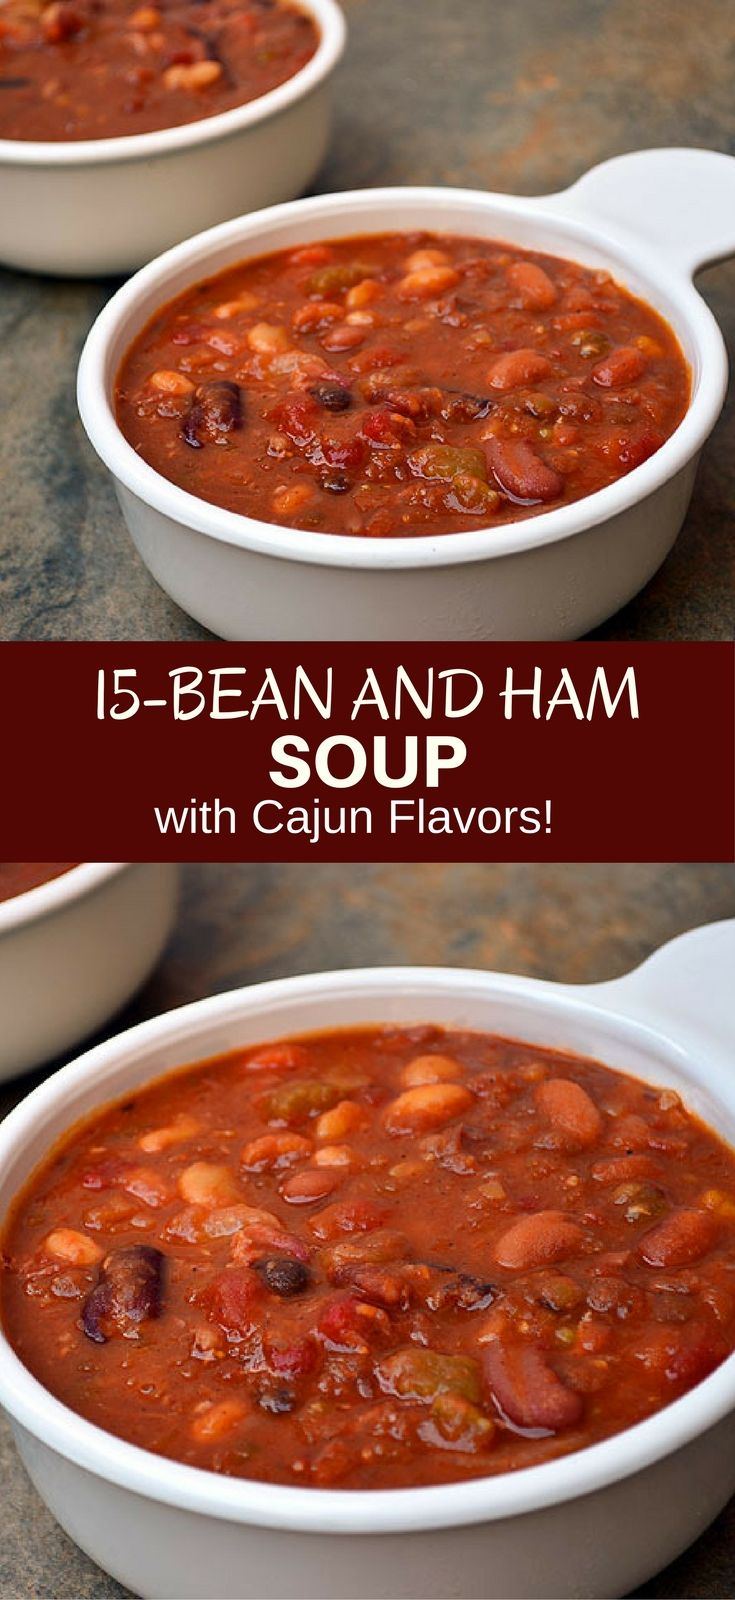 15-Bean Soup with Ham with assorted beans, ham, tomatoes, and Cajun spices for the ultimate cold weather comfort food. It's thick, hearty, delicious and the perfect use for your leftover ham! #beans #beansoup #ham #soup